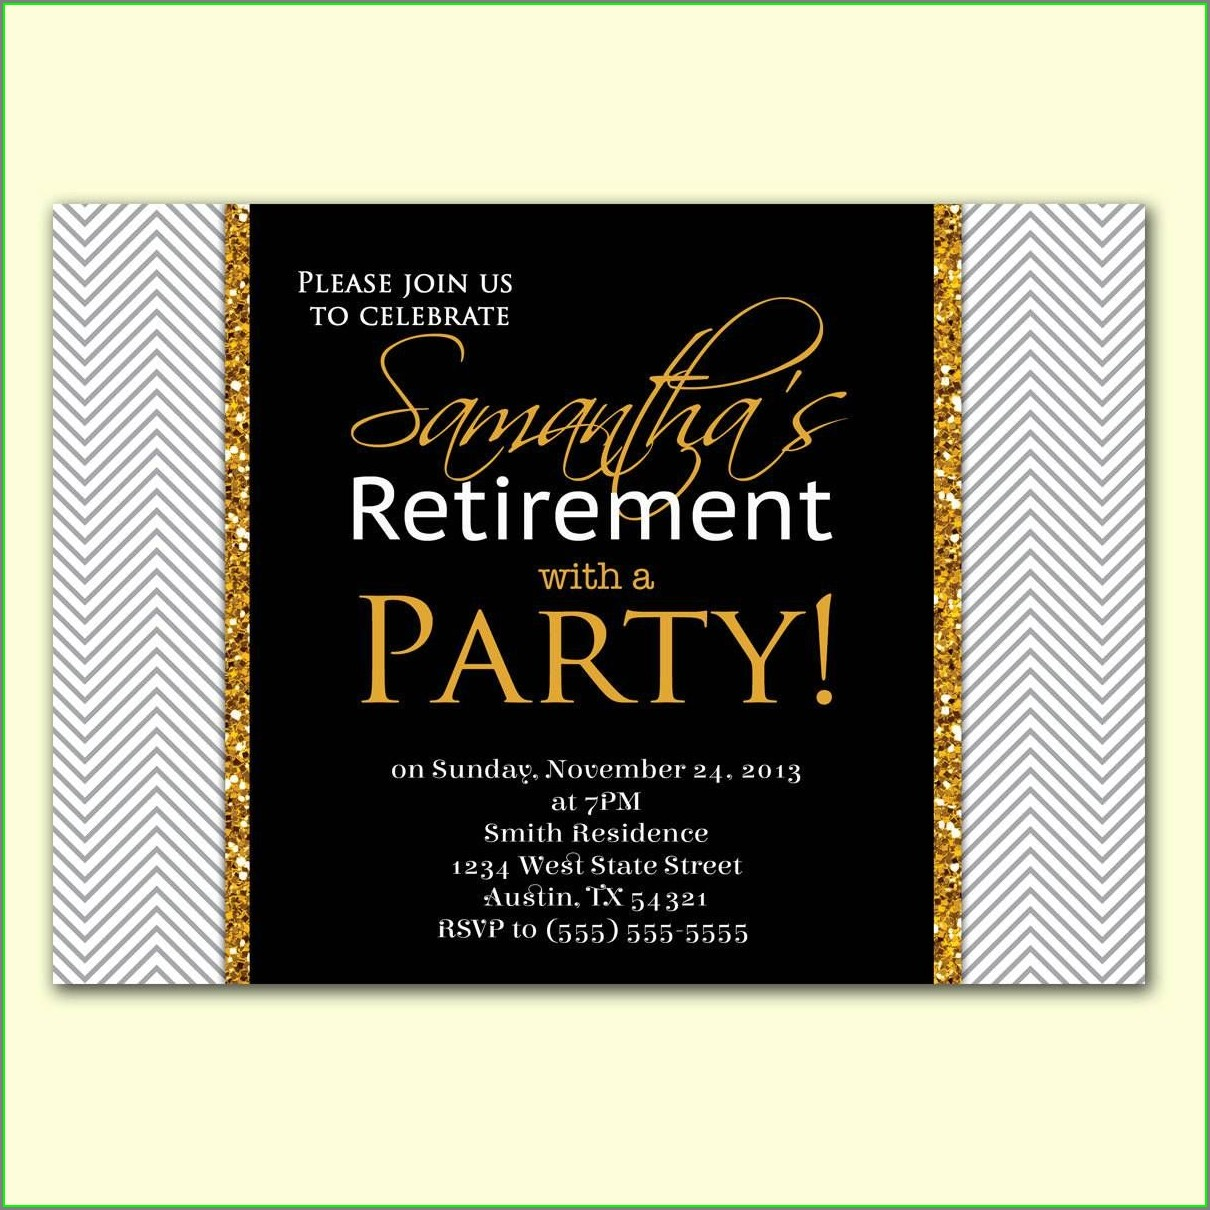 Invitation Template For Retirement Party